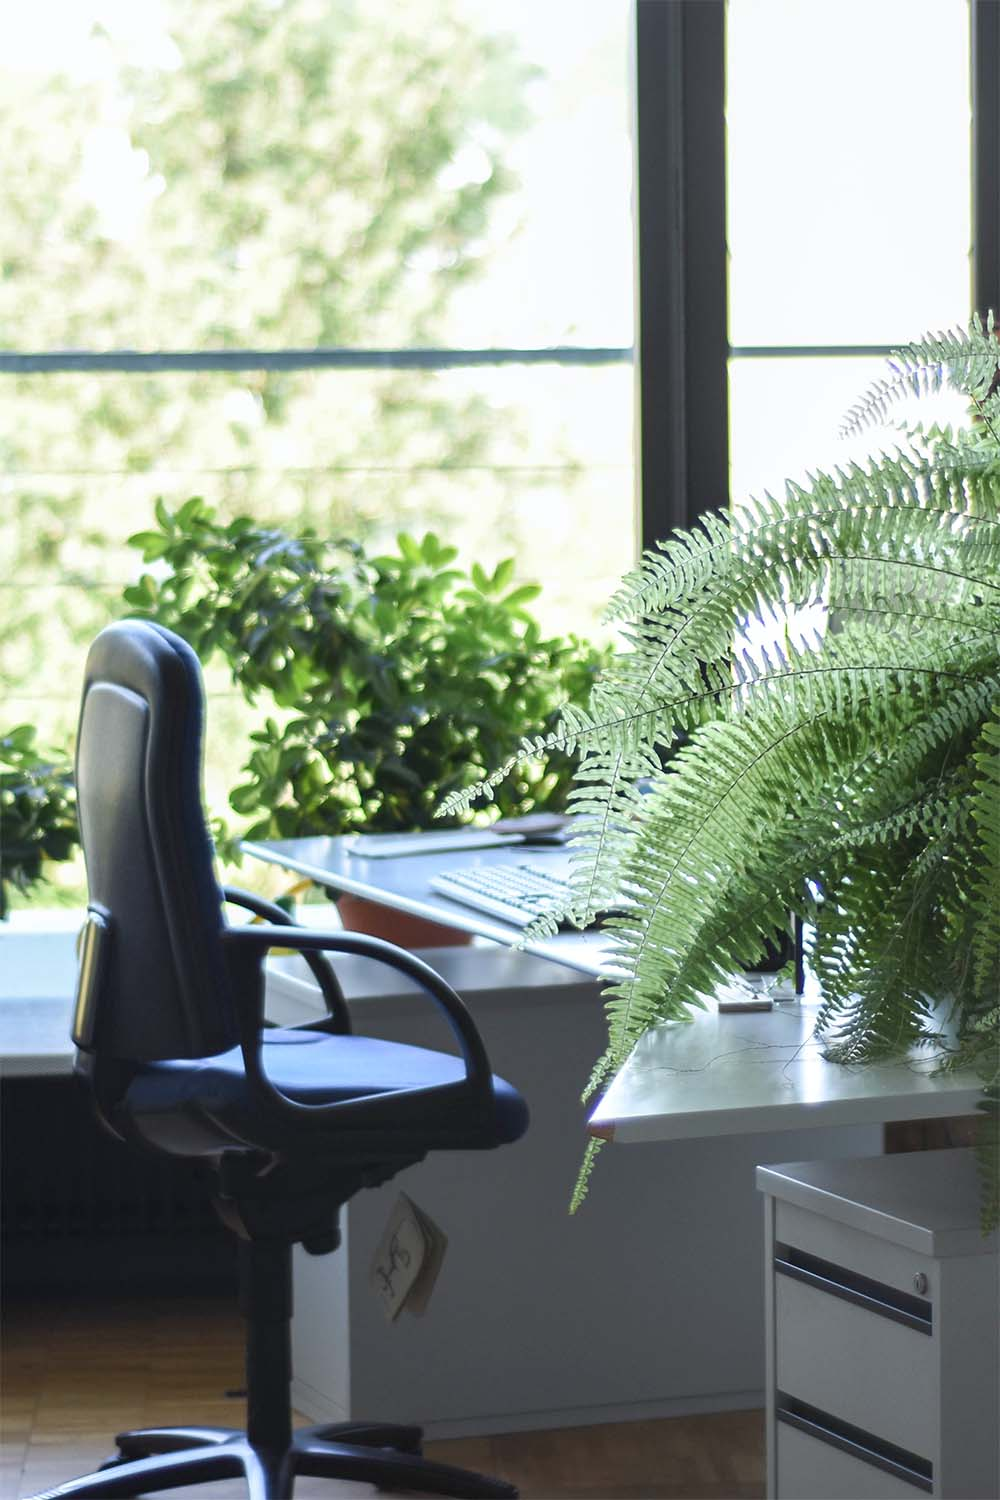 Photograph of a desk and chair by a window. There are lots of plants around the desk.